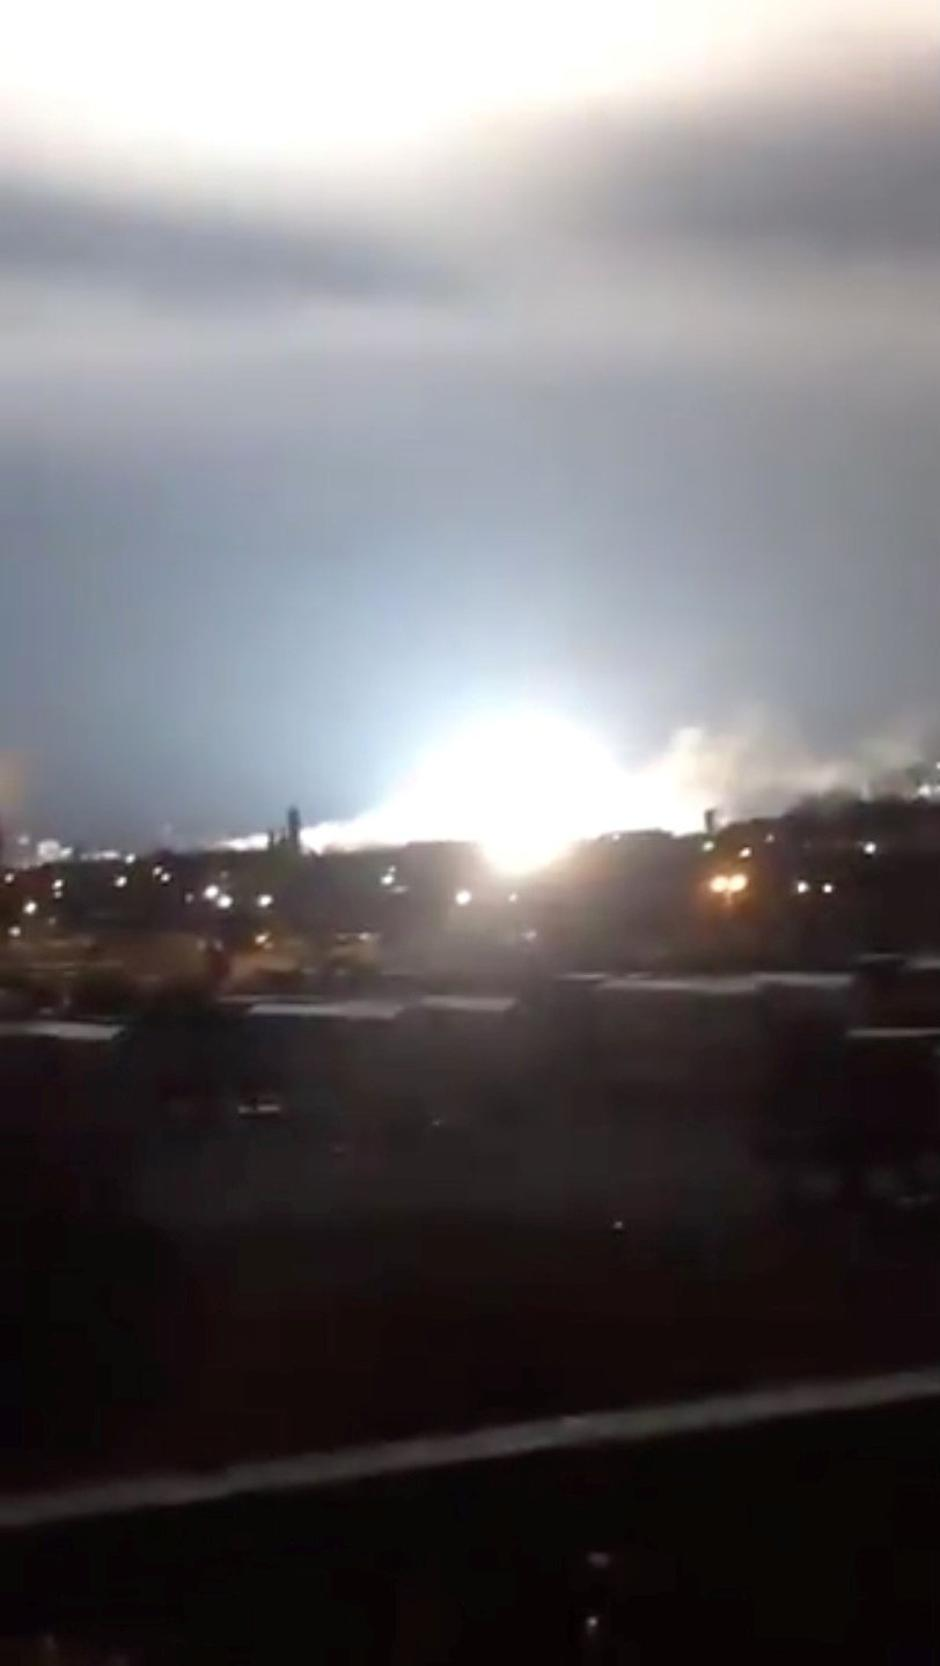 Bright light is seen after a transformer explosion on Thursday at an electric power station in Queens | Autor: SOCIAL MEDIA/REUTERS/PIXSELL/REUTERS/PIXSELL